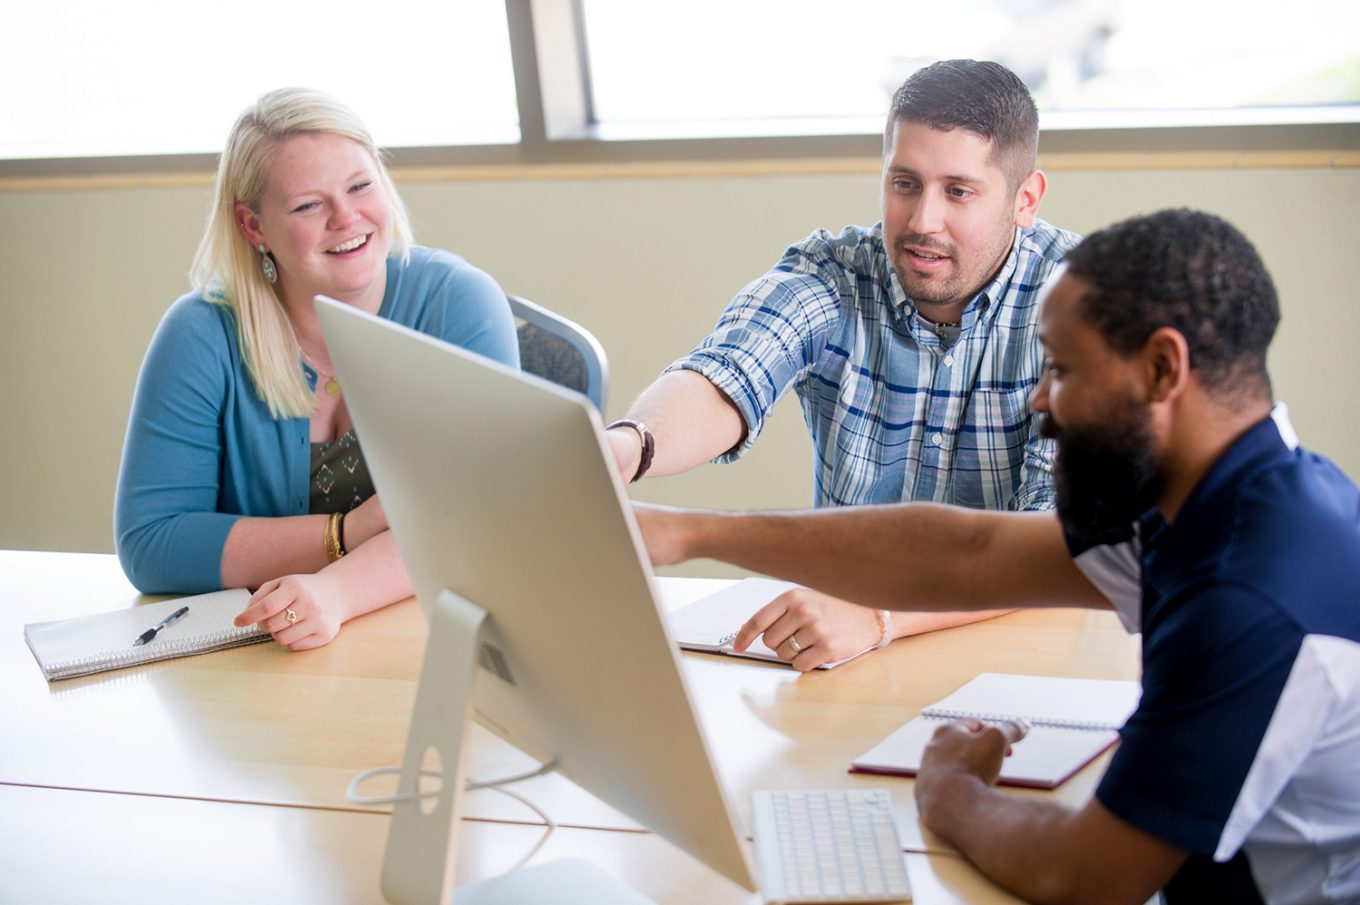 Students interaction on monitor